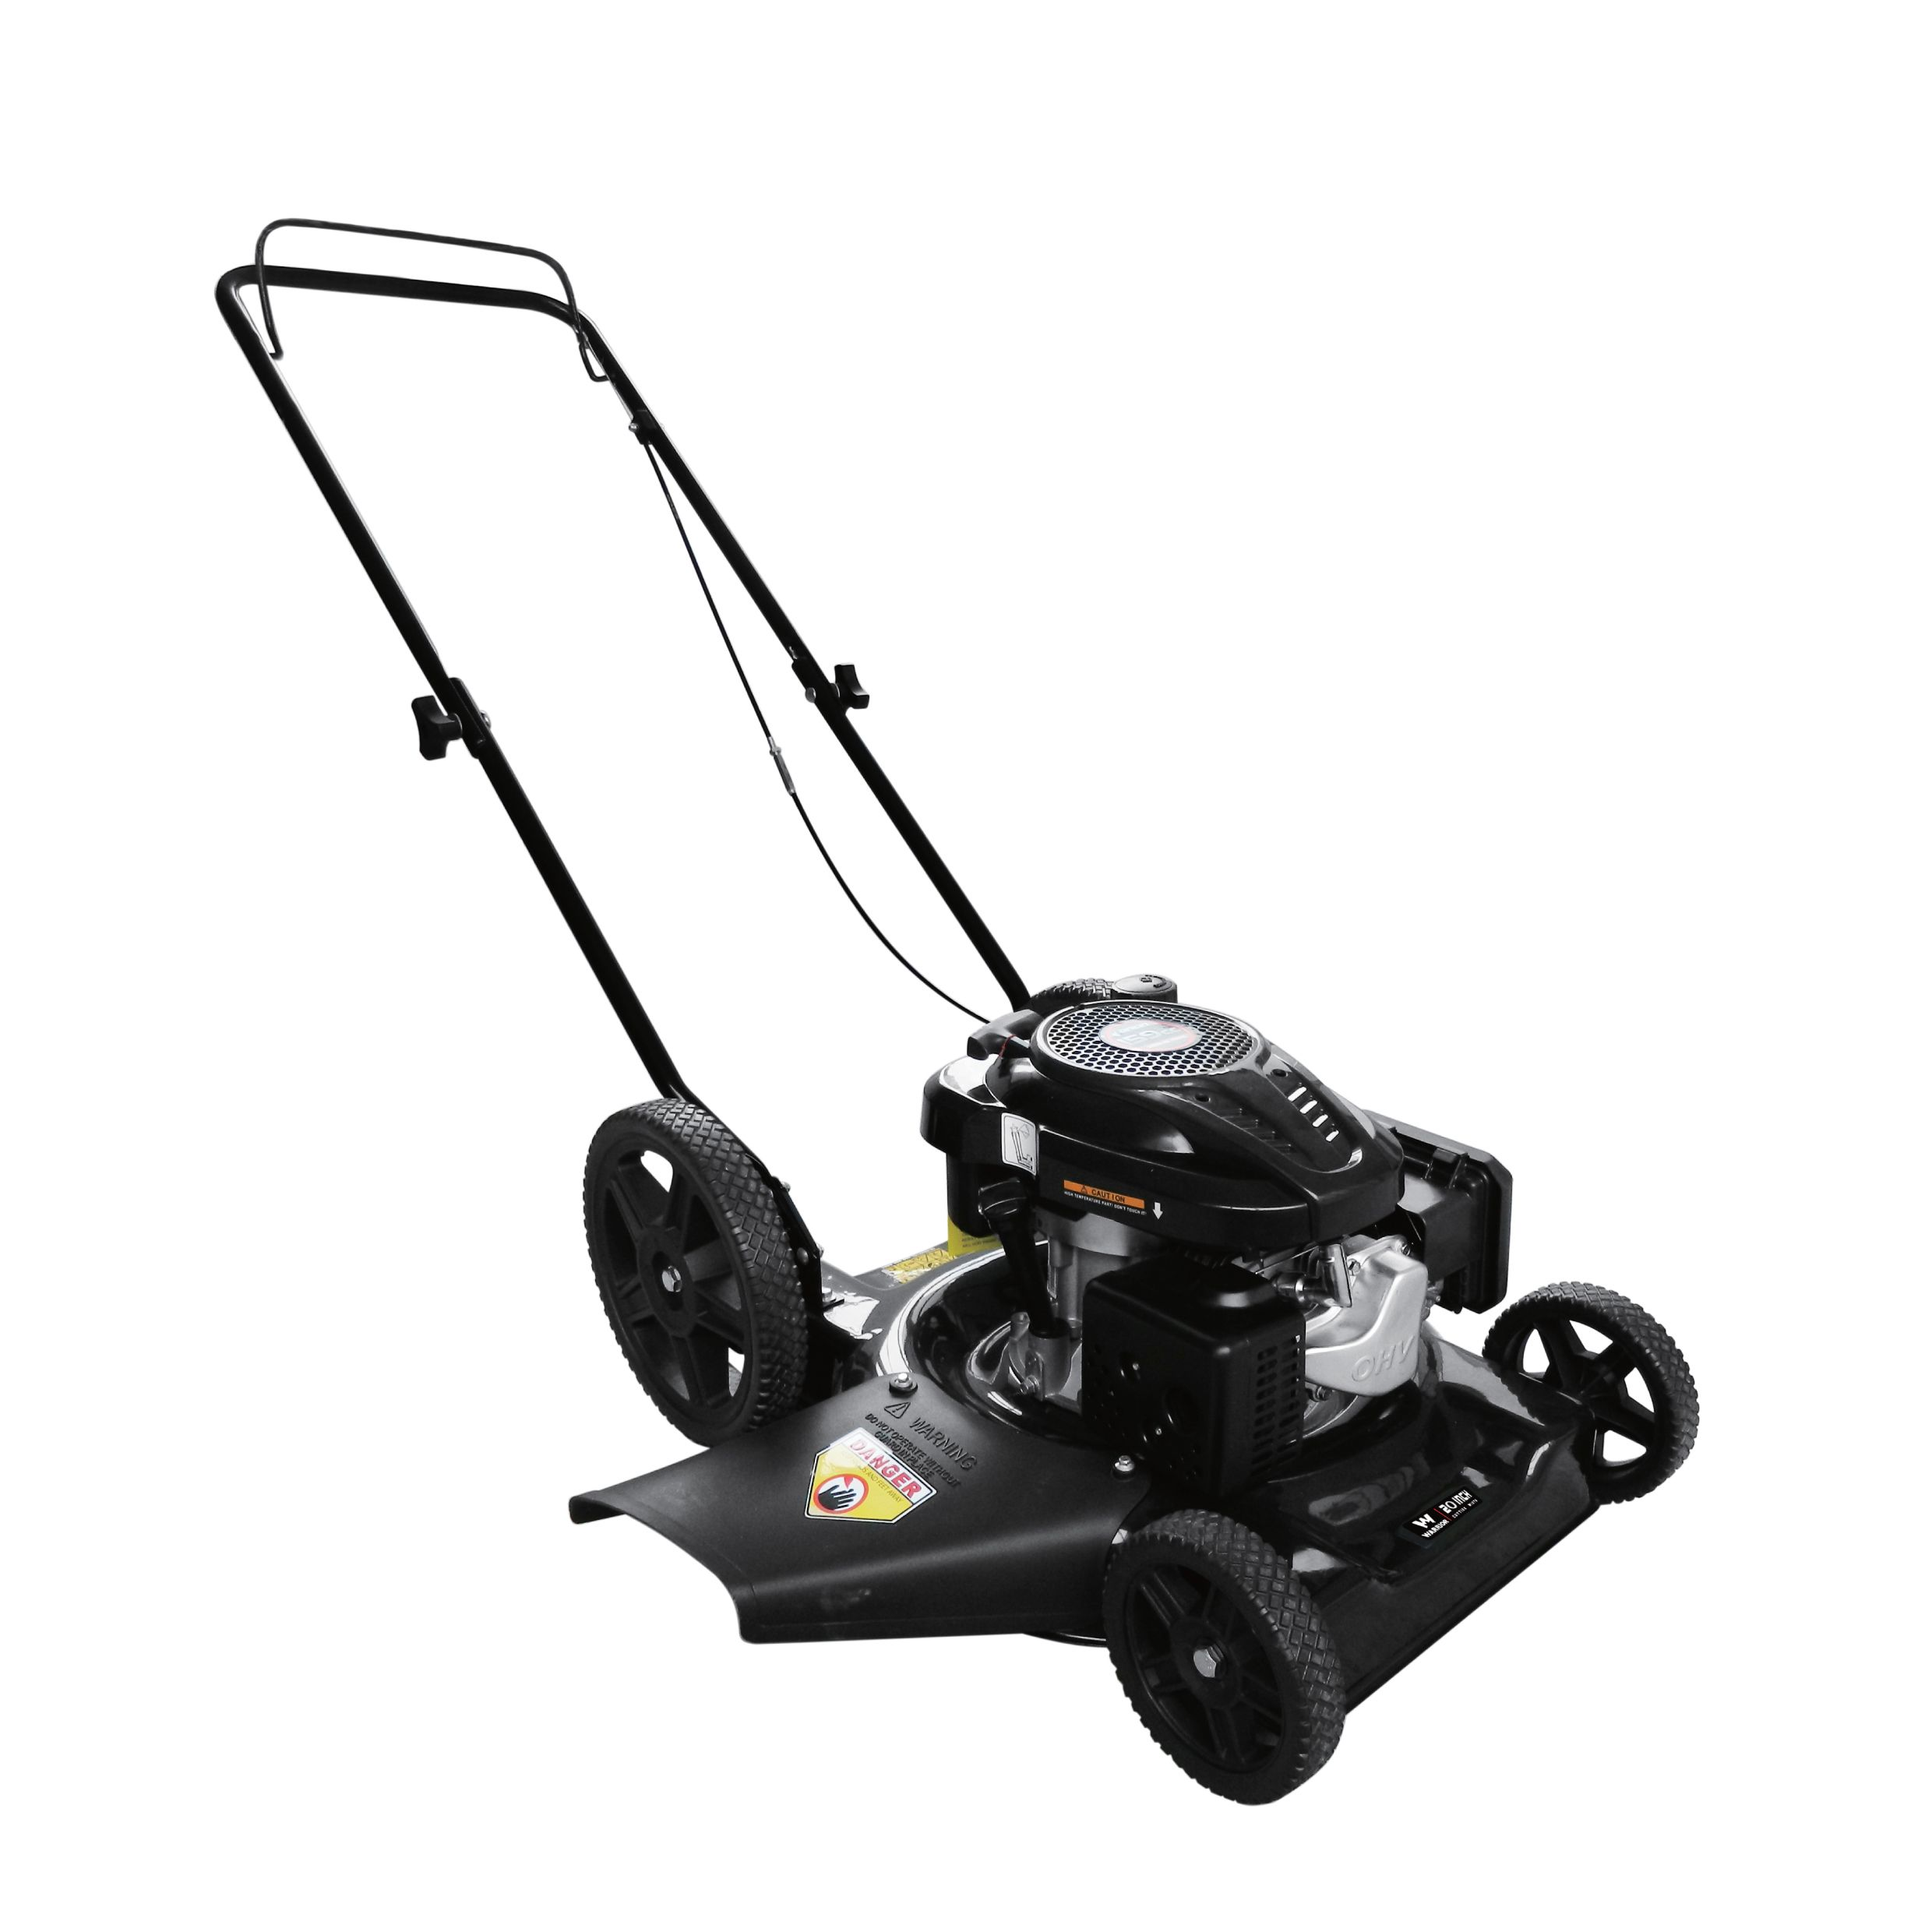 Warrior Tools Black Gas Powered 21 inch Push Lawn Mower